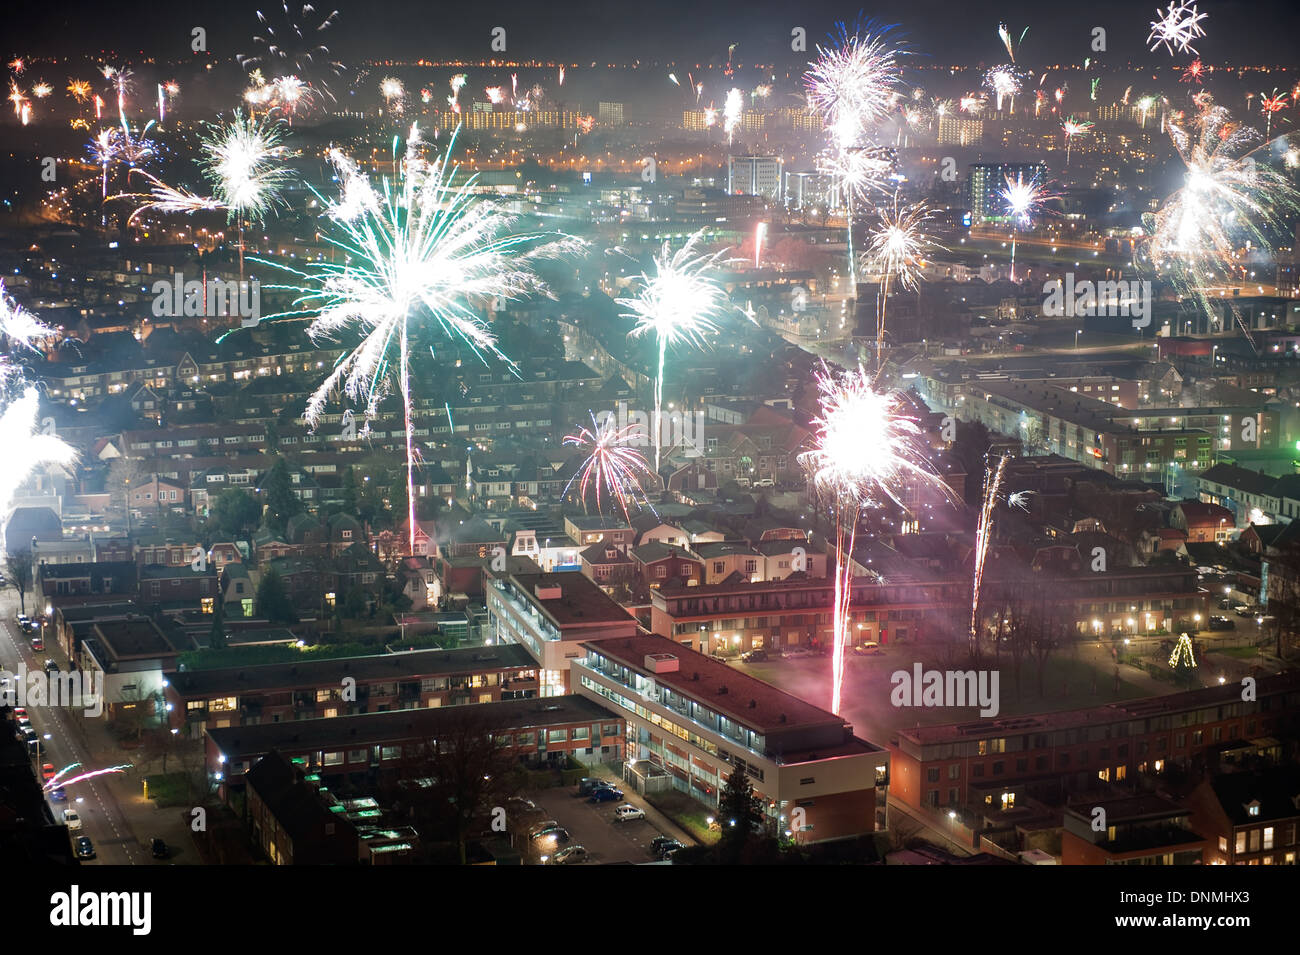 Fireworks on new years eve as seen from a 101 meters high building in the center of Enschede in the Netherlands - Stock Image